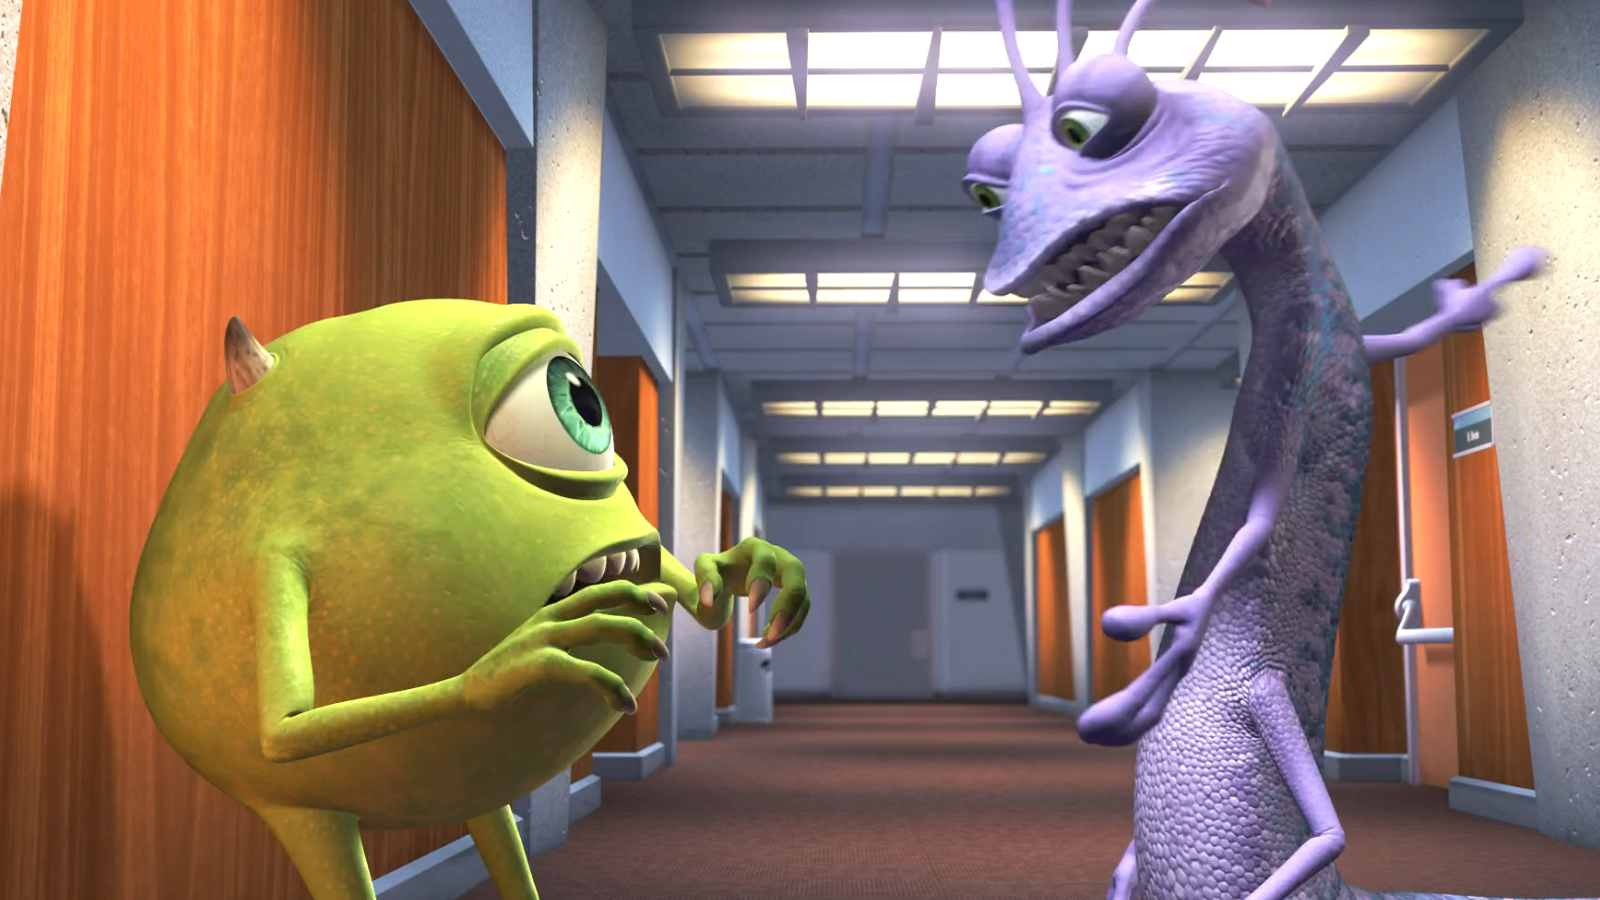 my movie review of monster inc Monsters, inc is a 2001 animated comedy film directed by pete  is only minor  and it does not affect my enjoyment of the movie all too much.